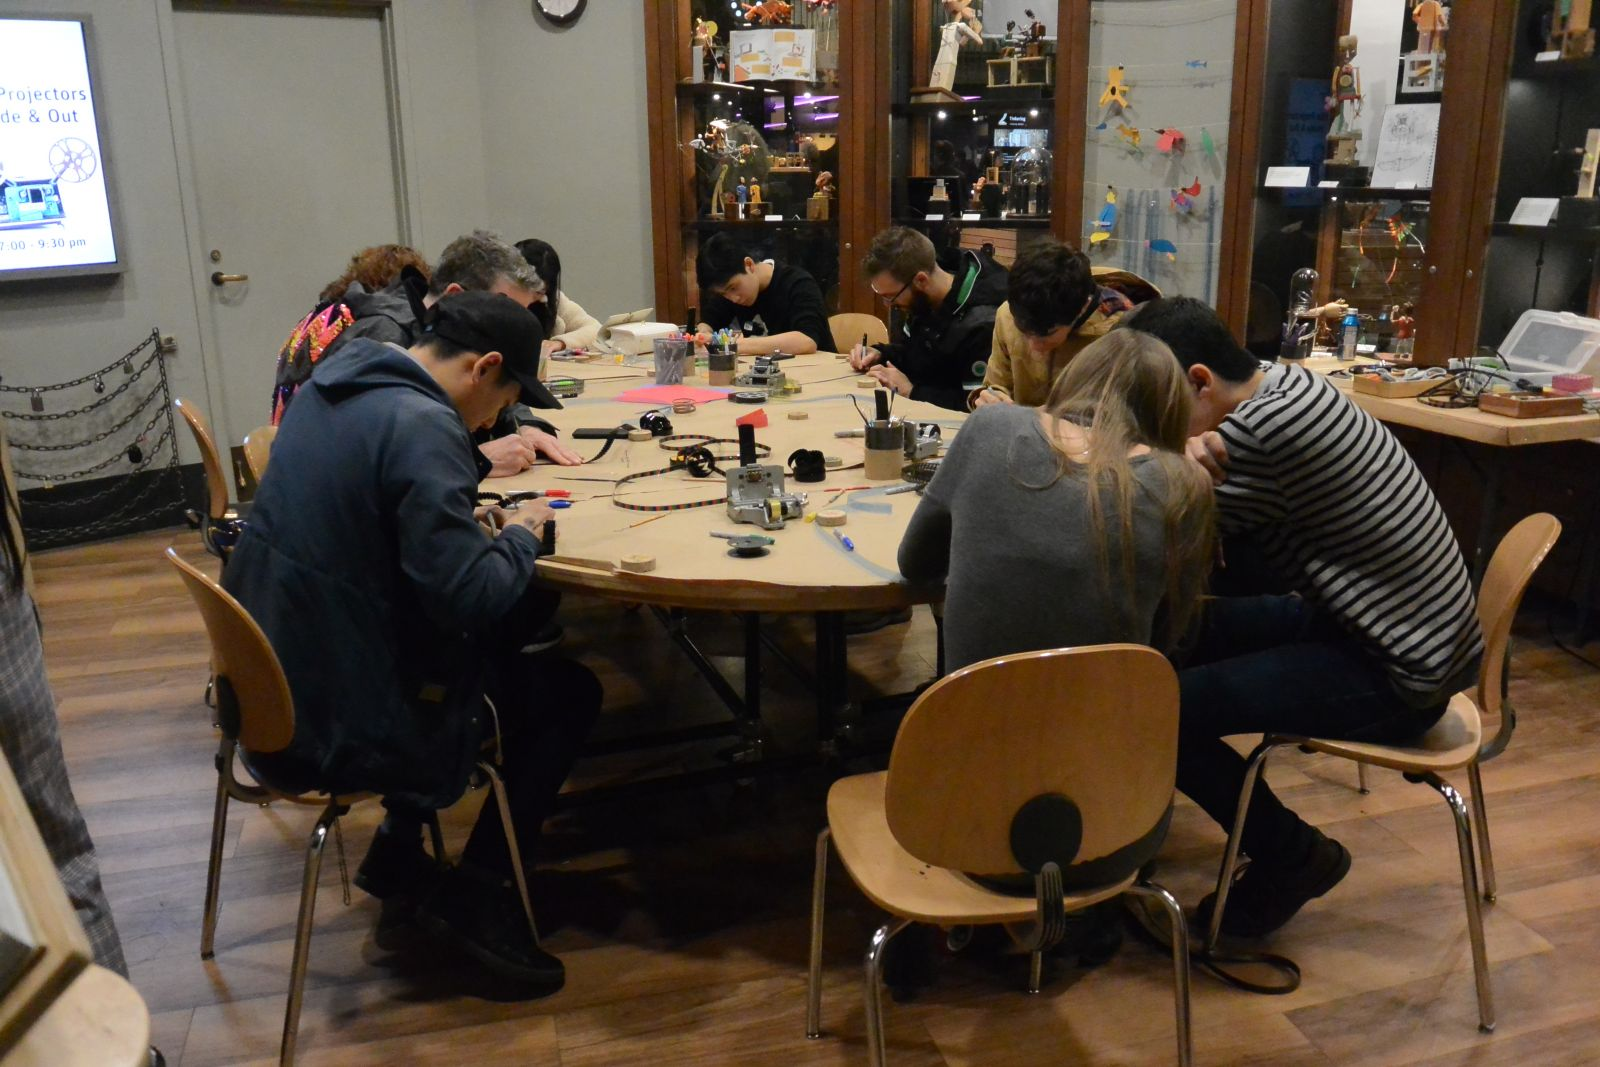 Workshop participants sitting at a wood table making direct animation films.